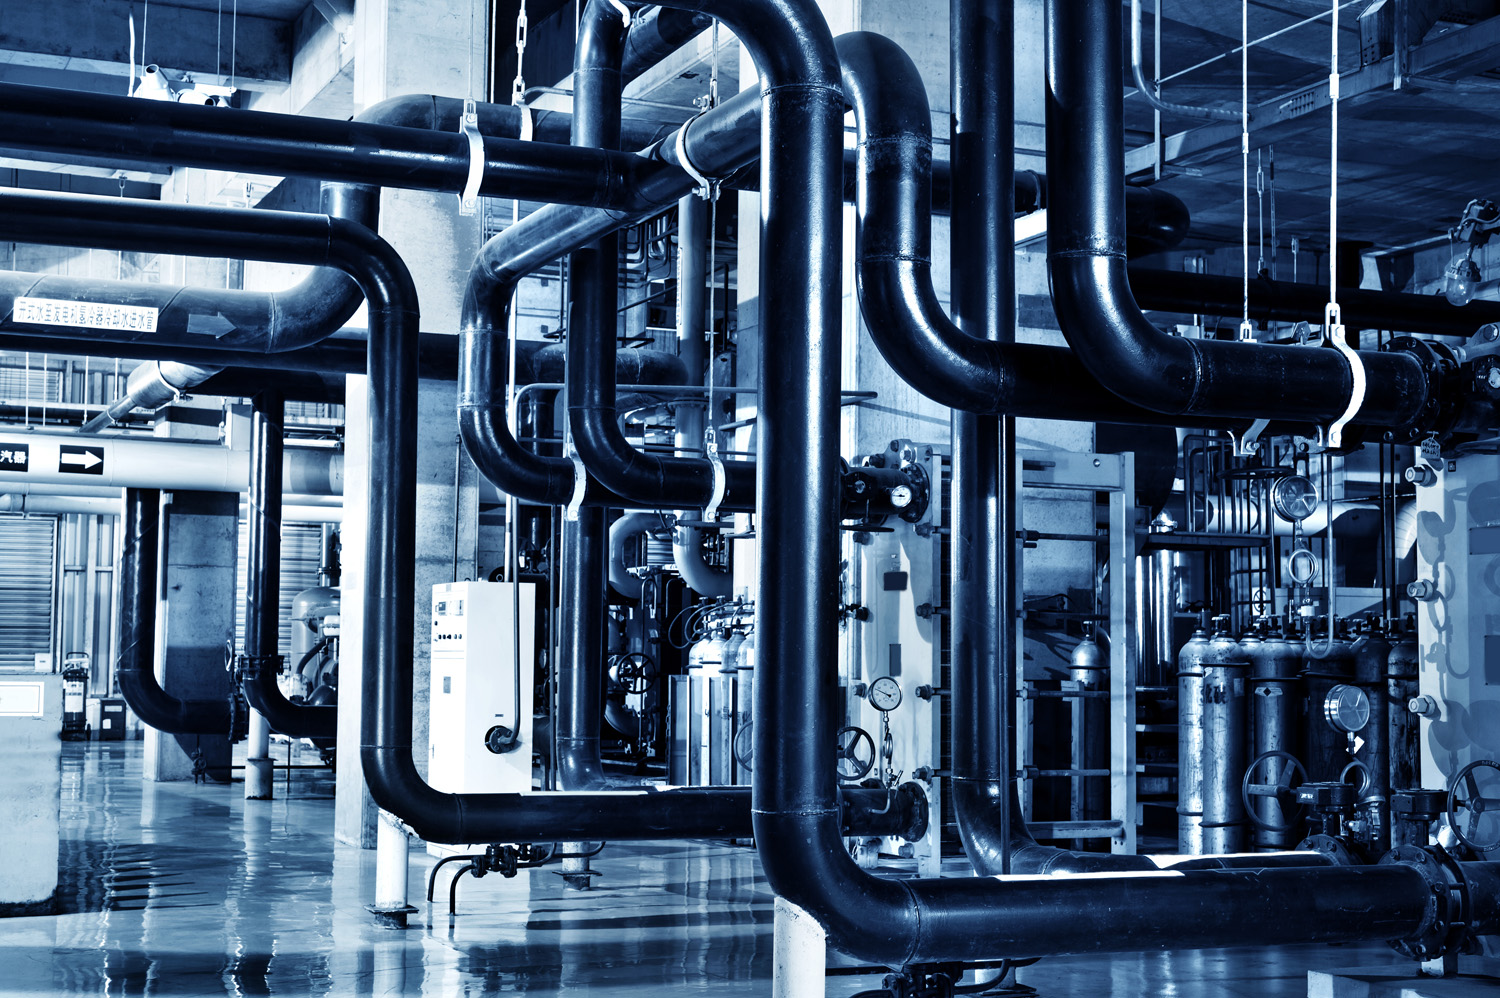 plumbing research papers Buying a research papers online has never been simpler order now to get your superb research buy research papers online get your research paper done on time with a personal approach.